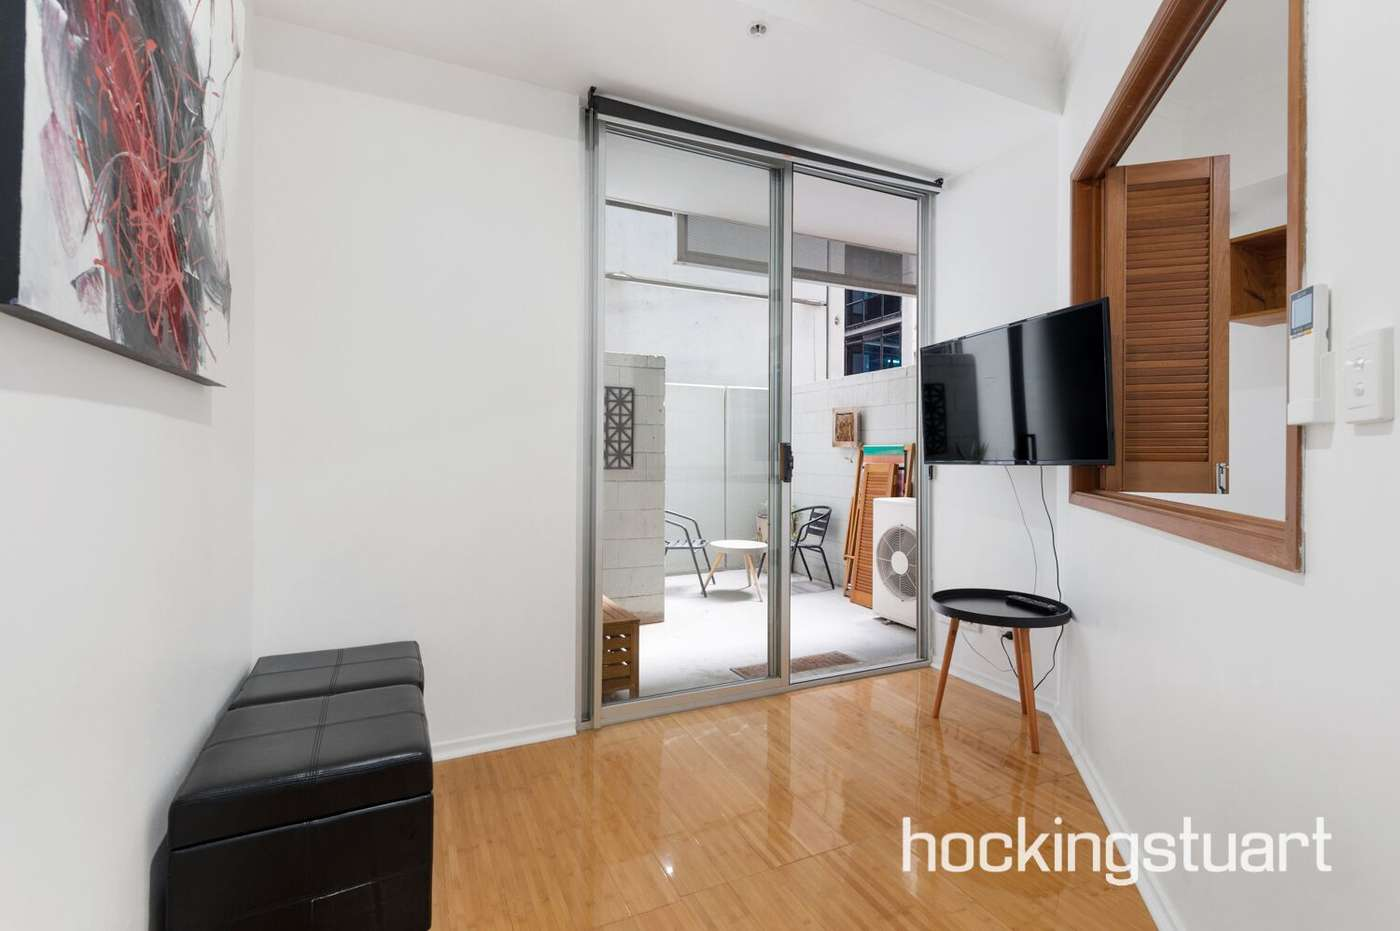 Main view of Homely apartment listing, 167/488 Swanston Street, Carlton, VIC 3053